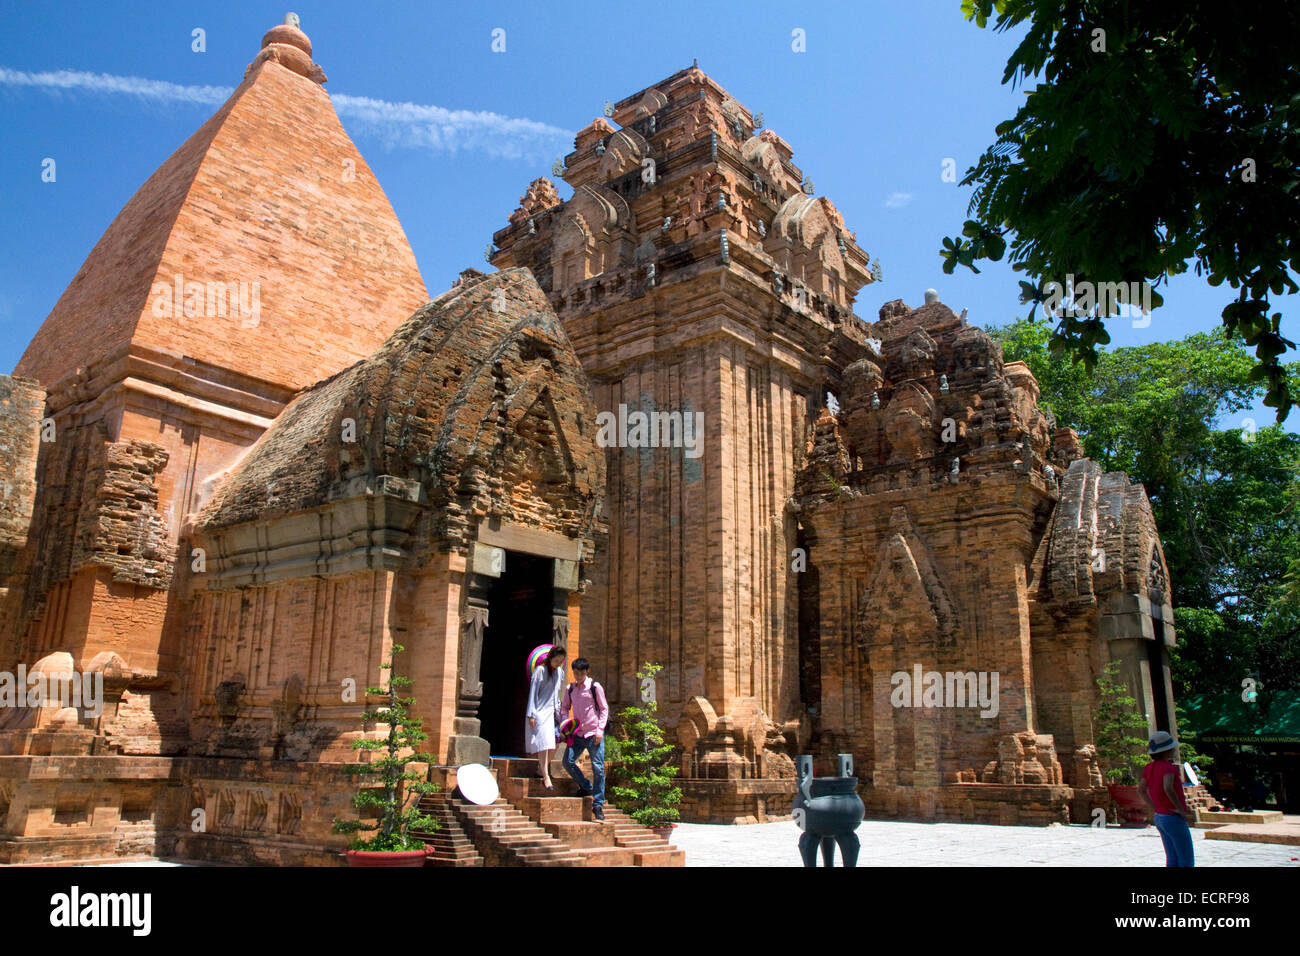 Po Nagar is a Cham temple tower located in the medieval principality of Kauthara near Nha Trang, Vietnam. - Stock Image